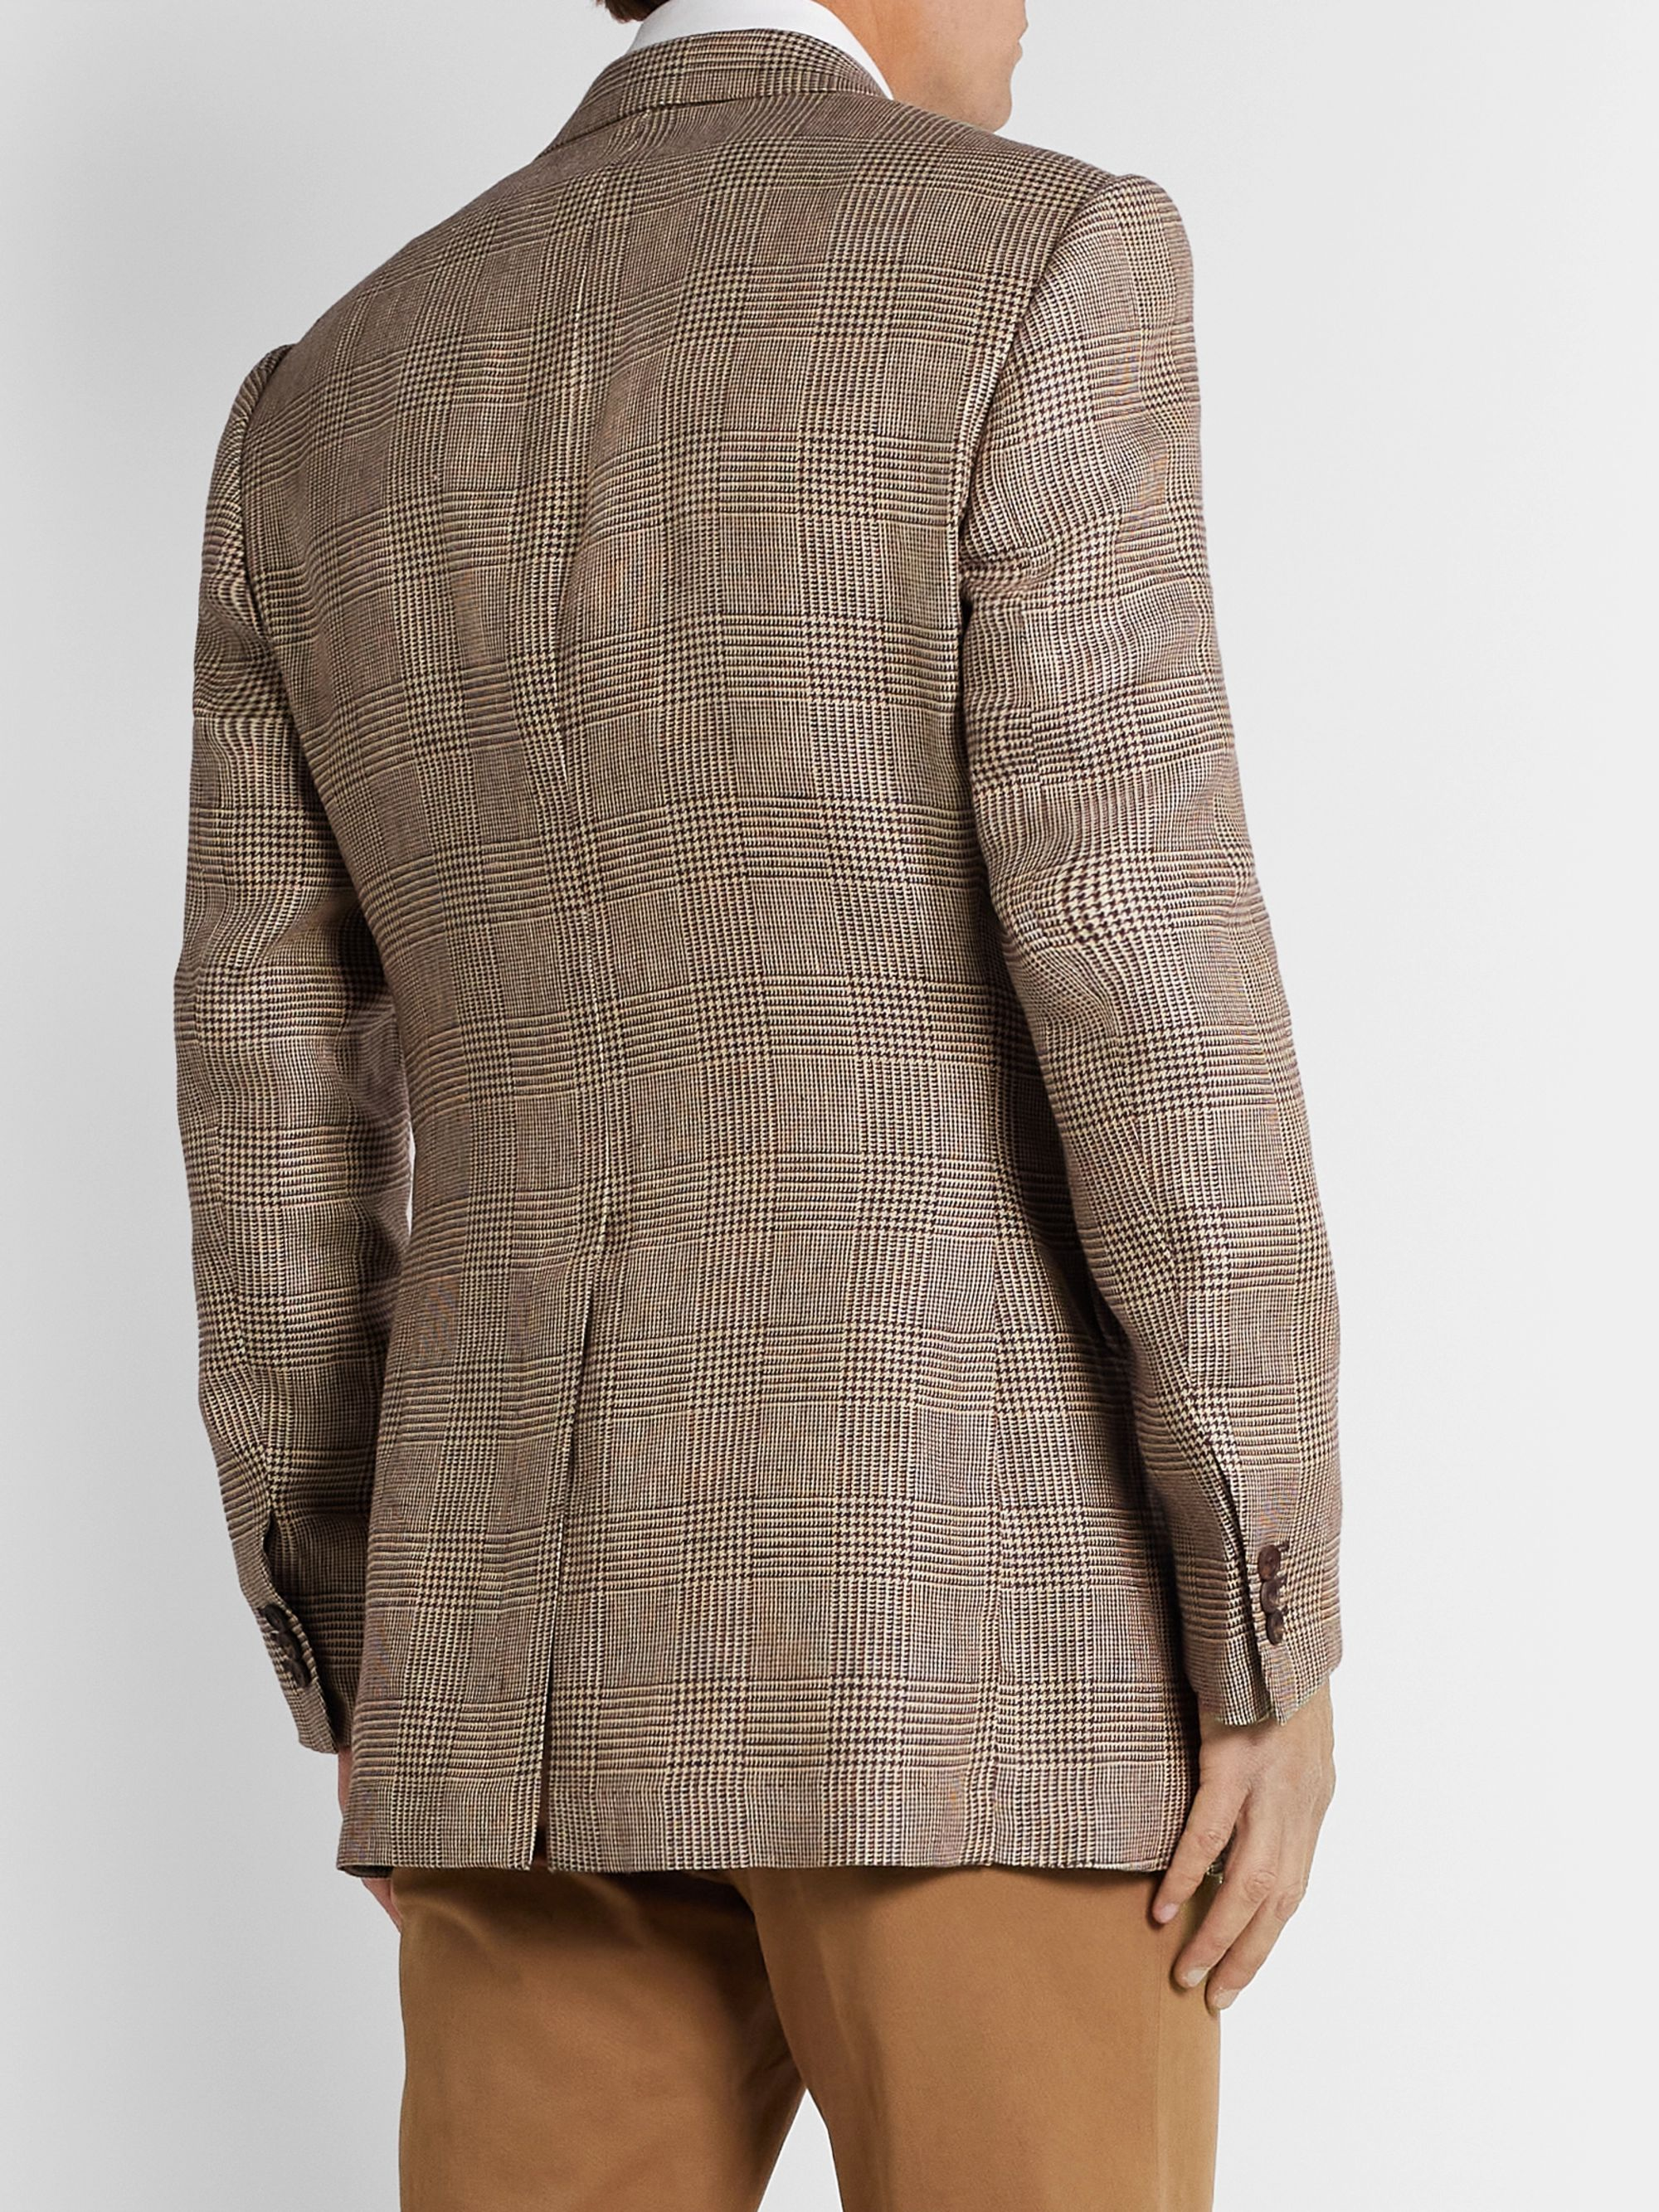 Maximilian Mogg Slim-Fit Checked Linen Blazer